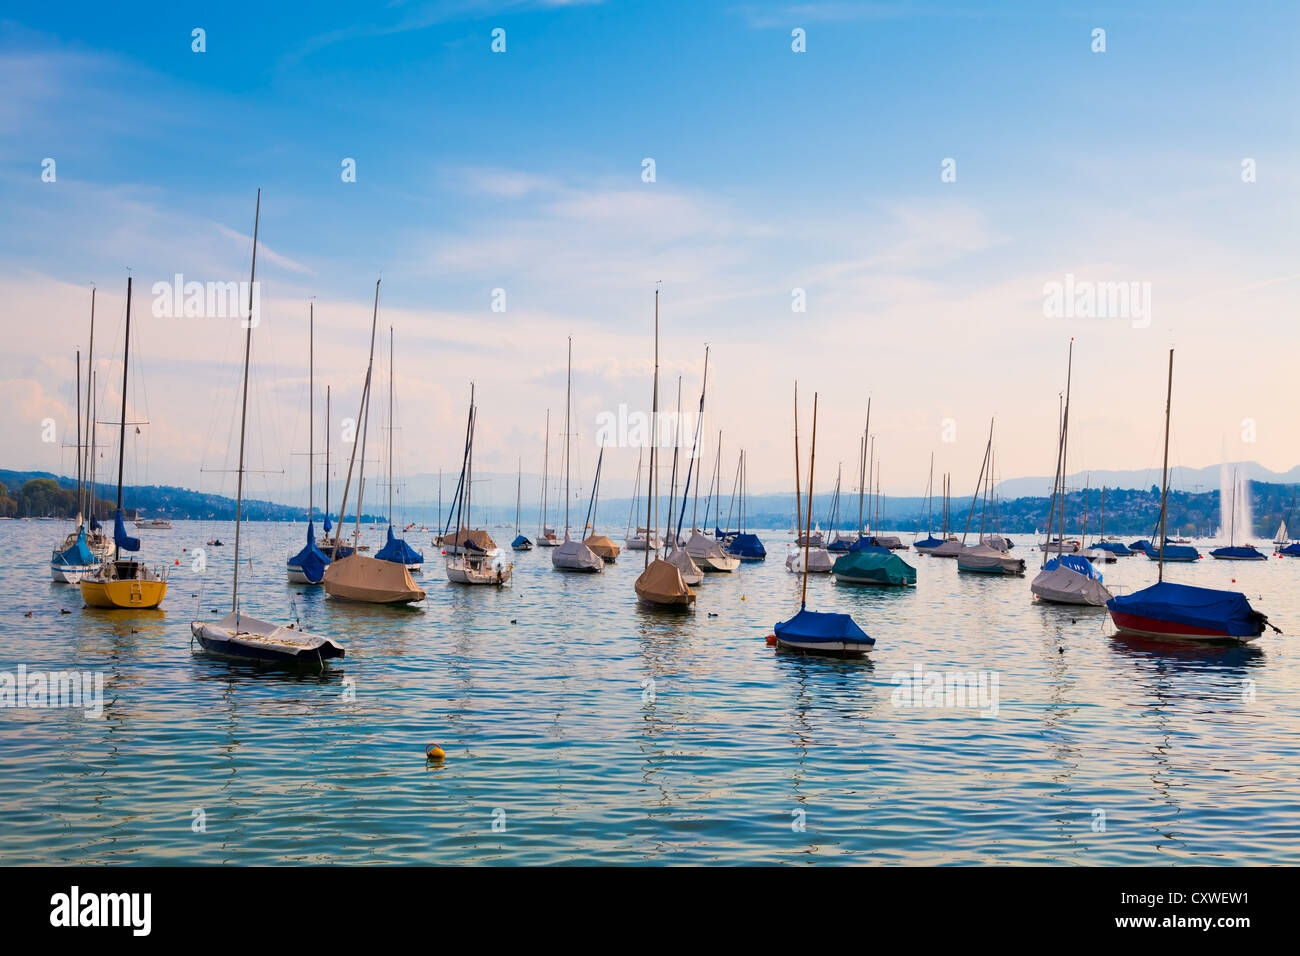 Boats moored on Lake Zurich, Switzerland - Stock Image